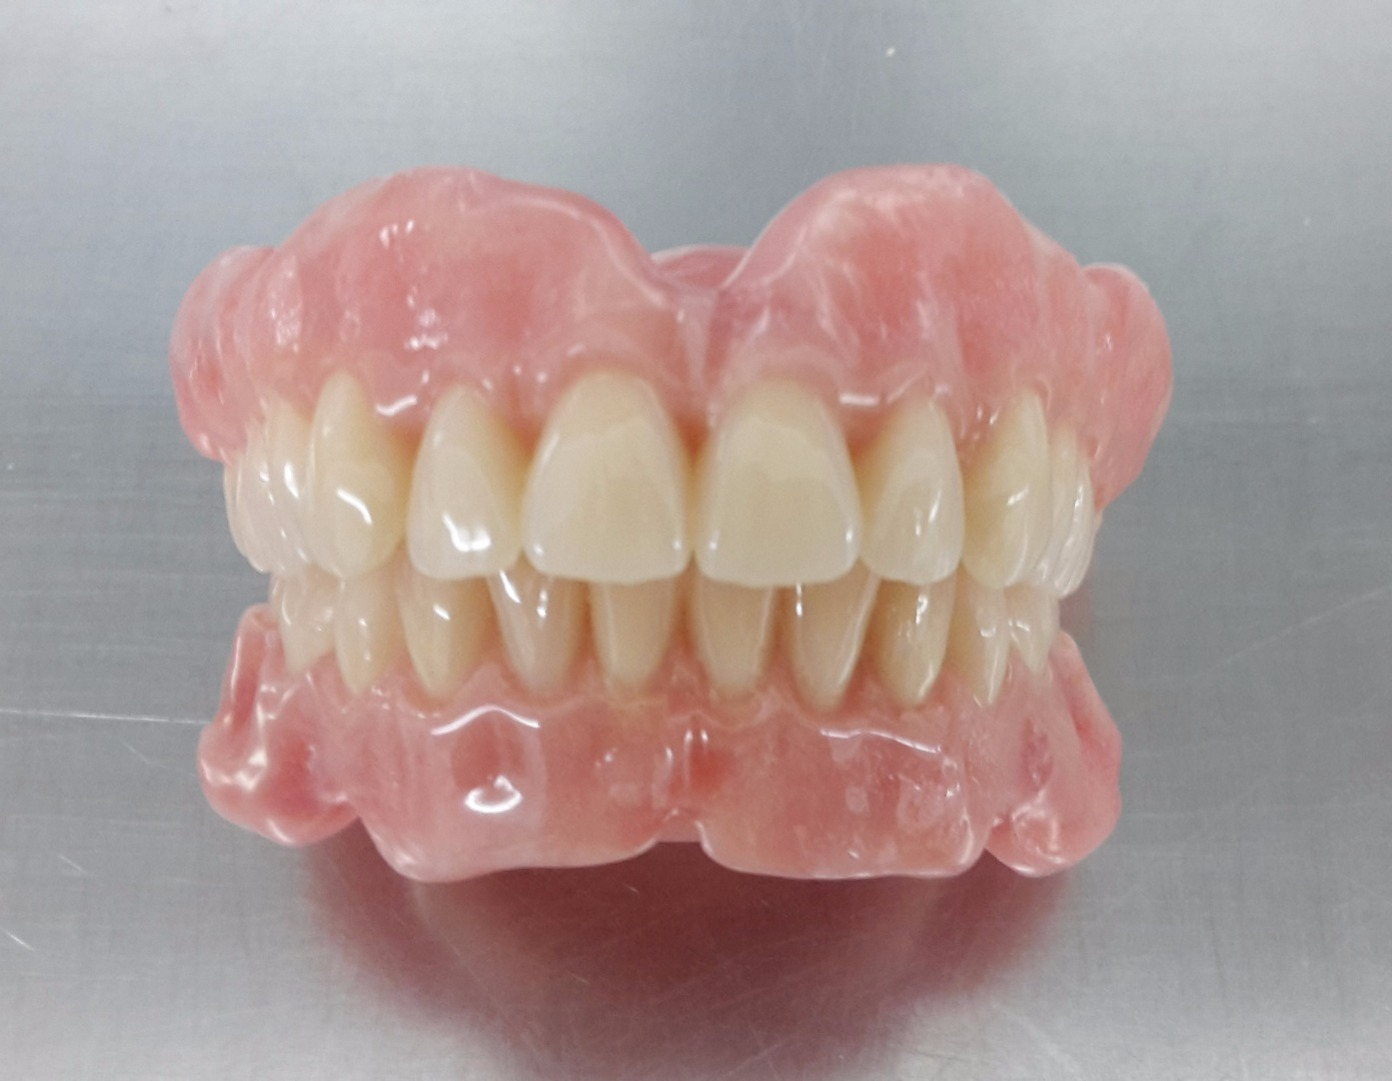 private dentures @ Dundee dental